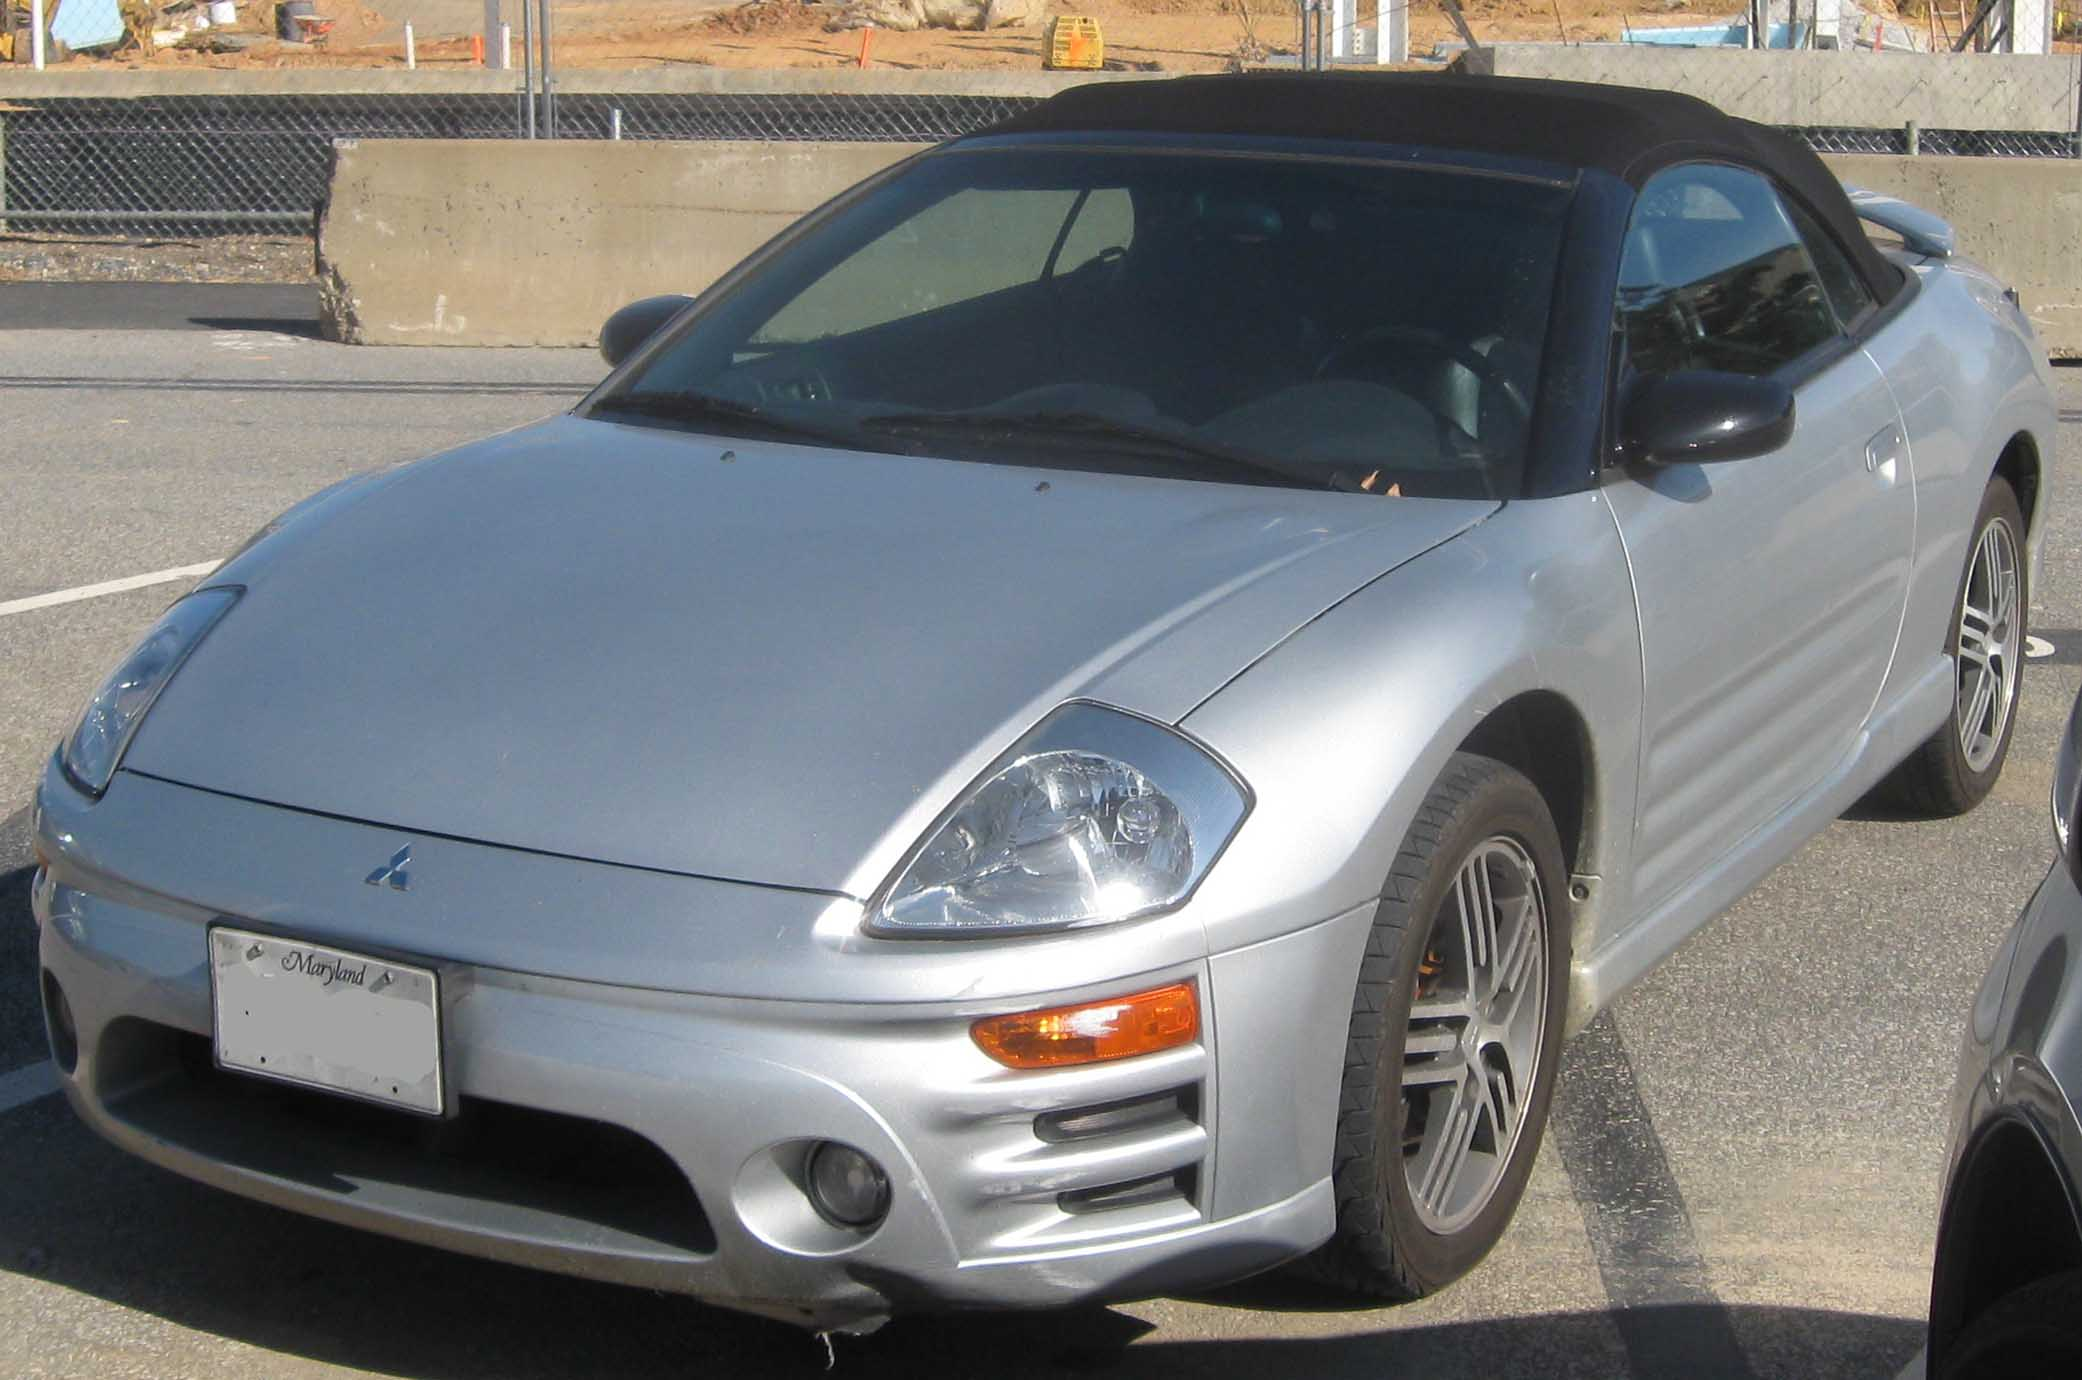 file00 02 mitsubishi eclipse spyderjpg wikimedia commons